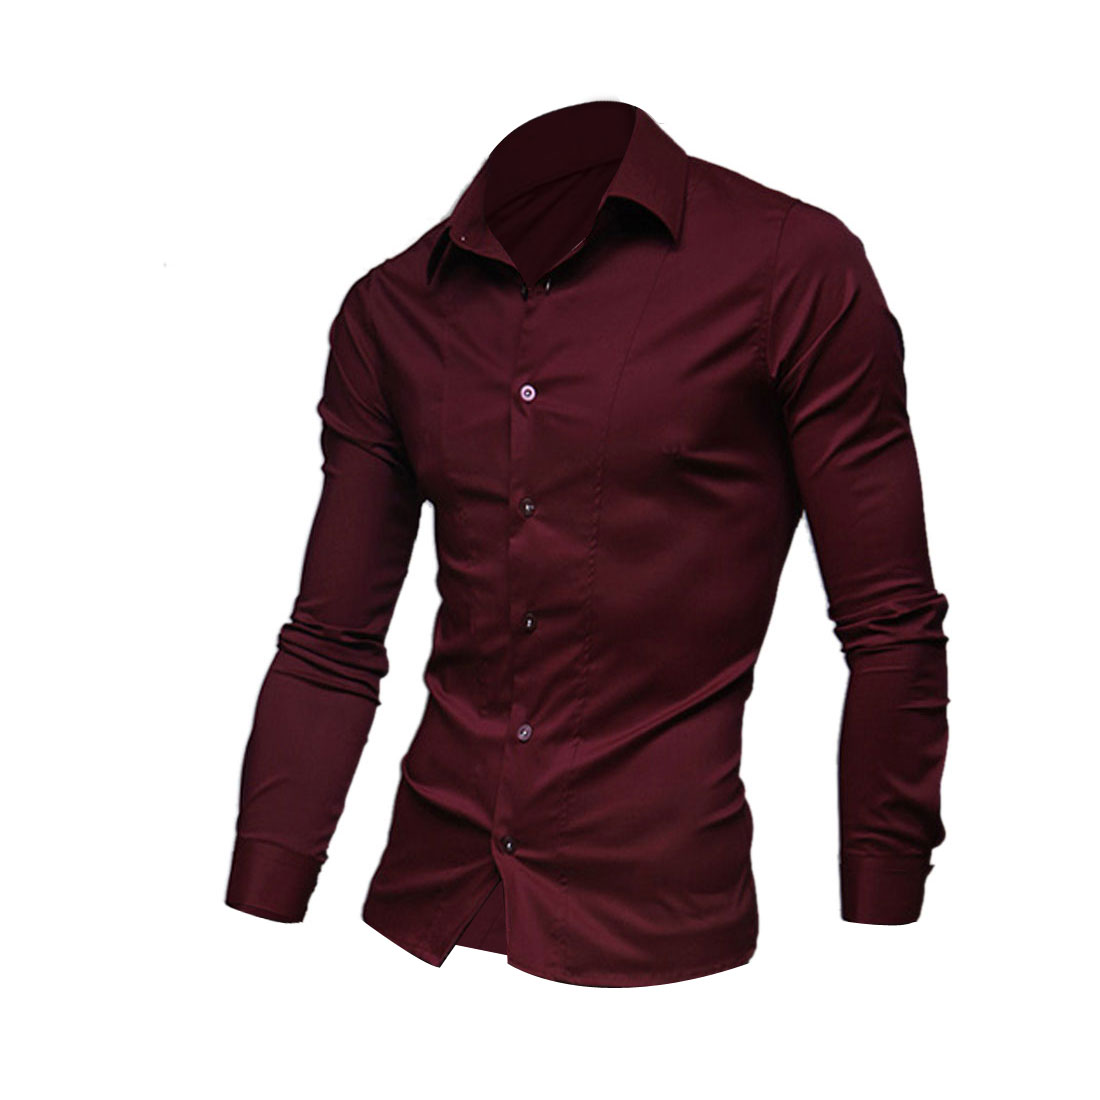 Men Single Breasted Long Sleeve Round Hem Casual Shirt Burgundy M